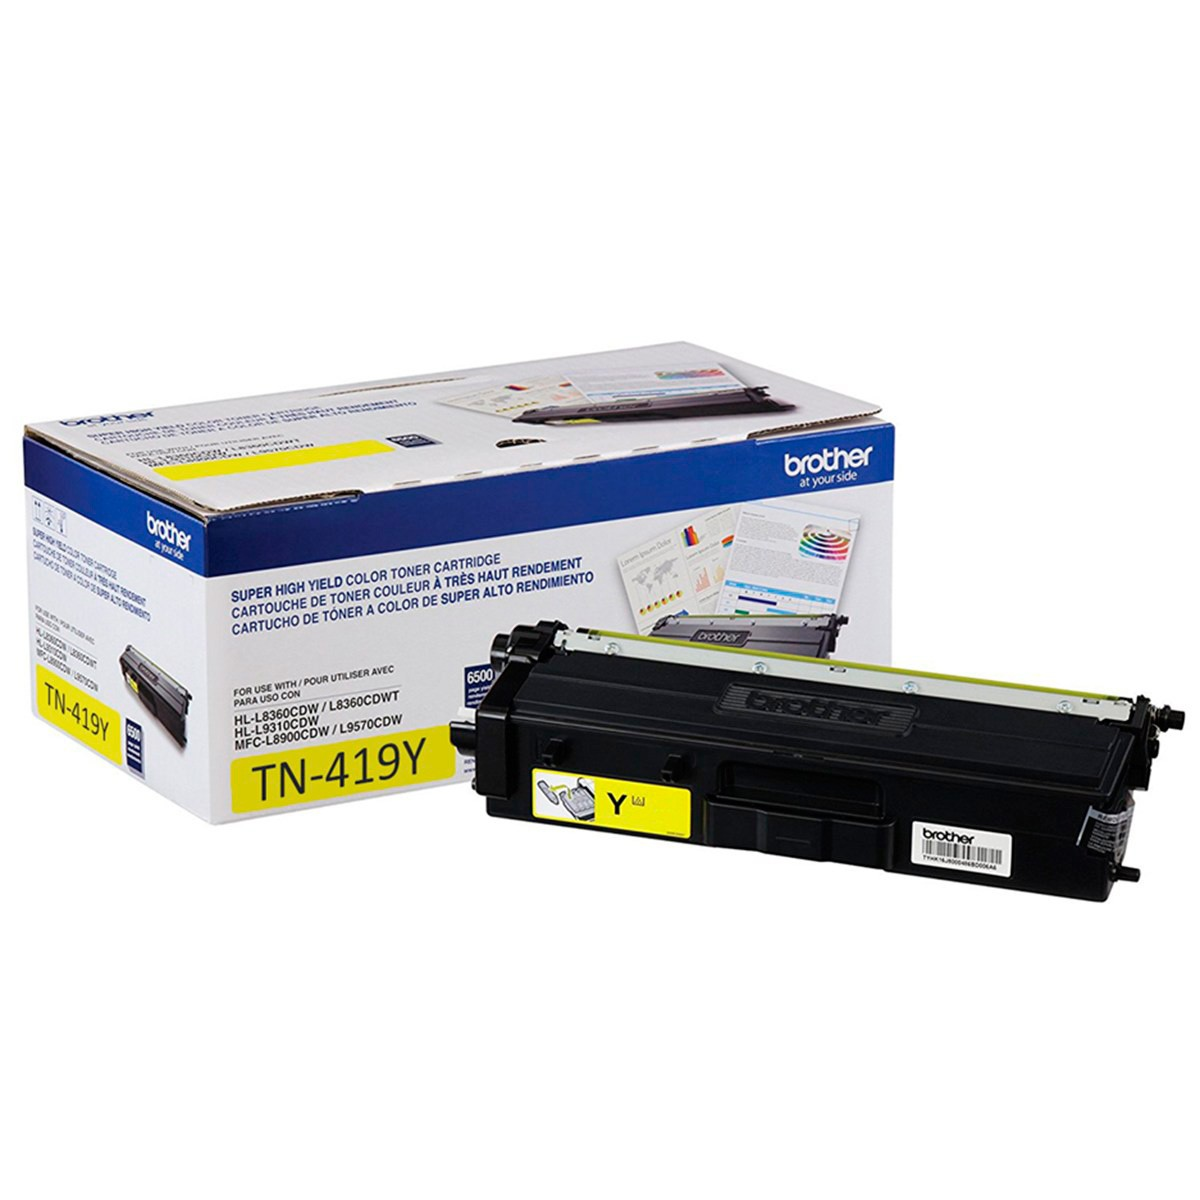 Cartucho de Toner Amarelo Brother TN-419Y